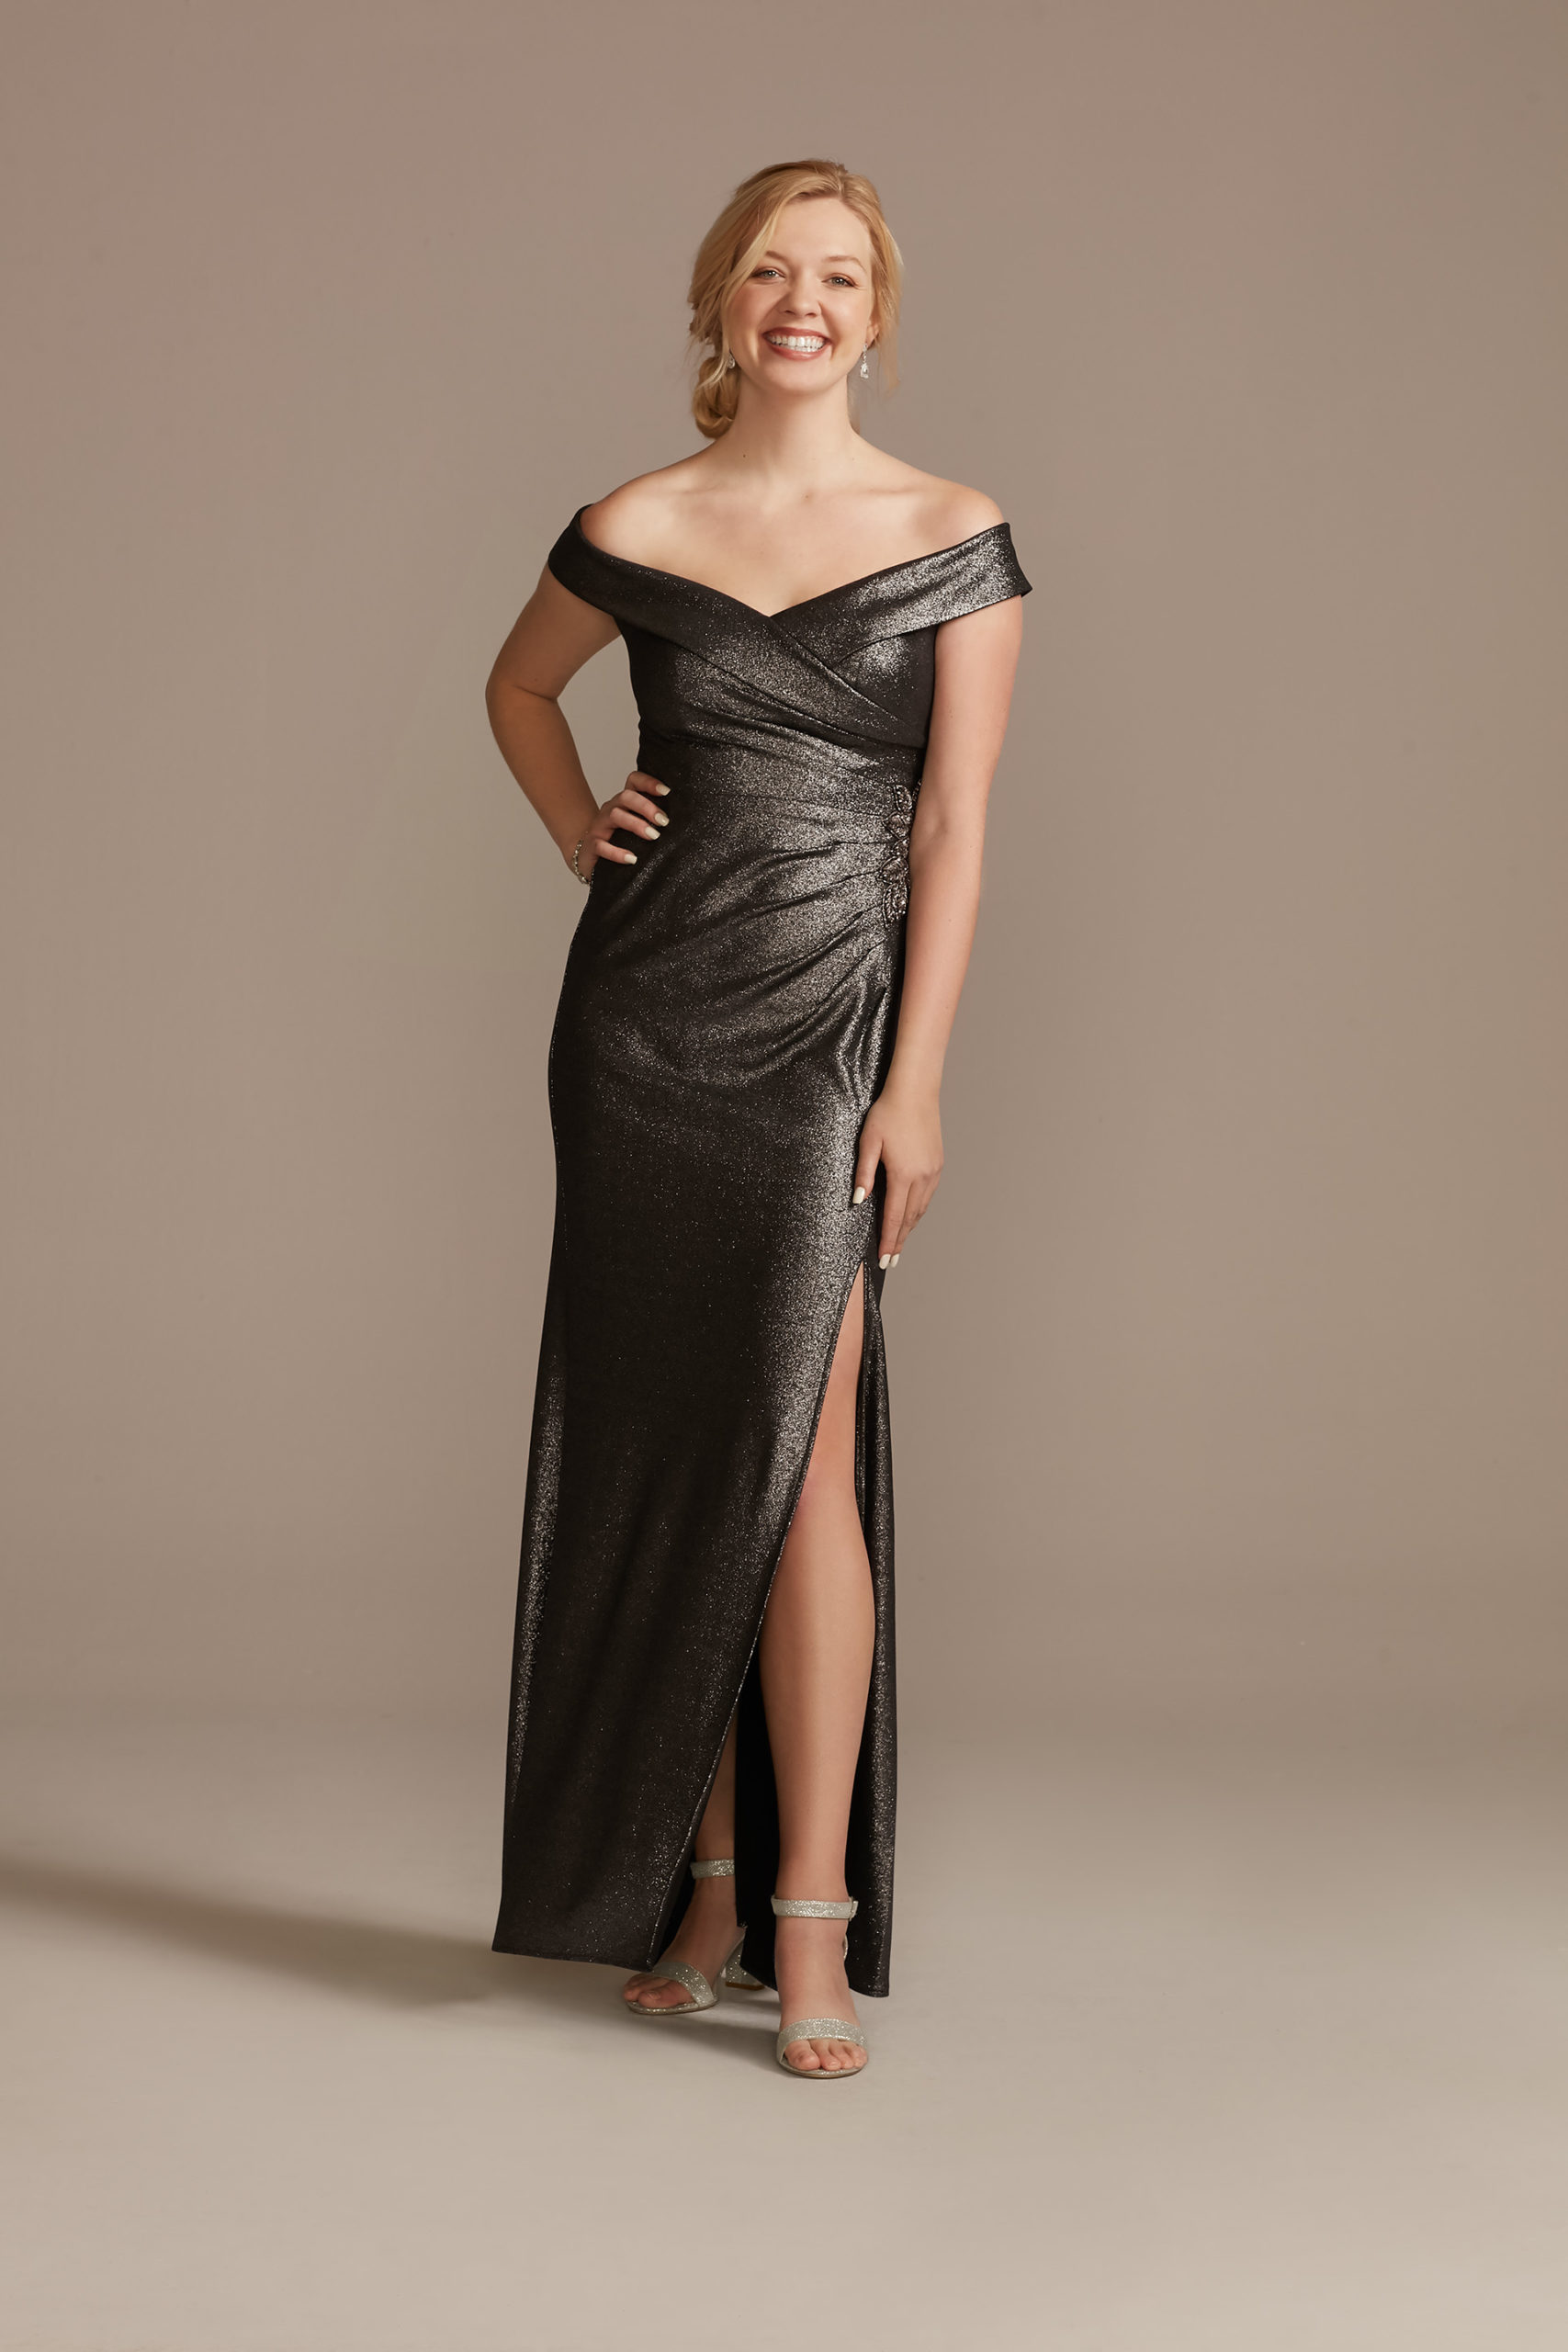 model wearing an off the shoulder gray metallic mother of the bride dress